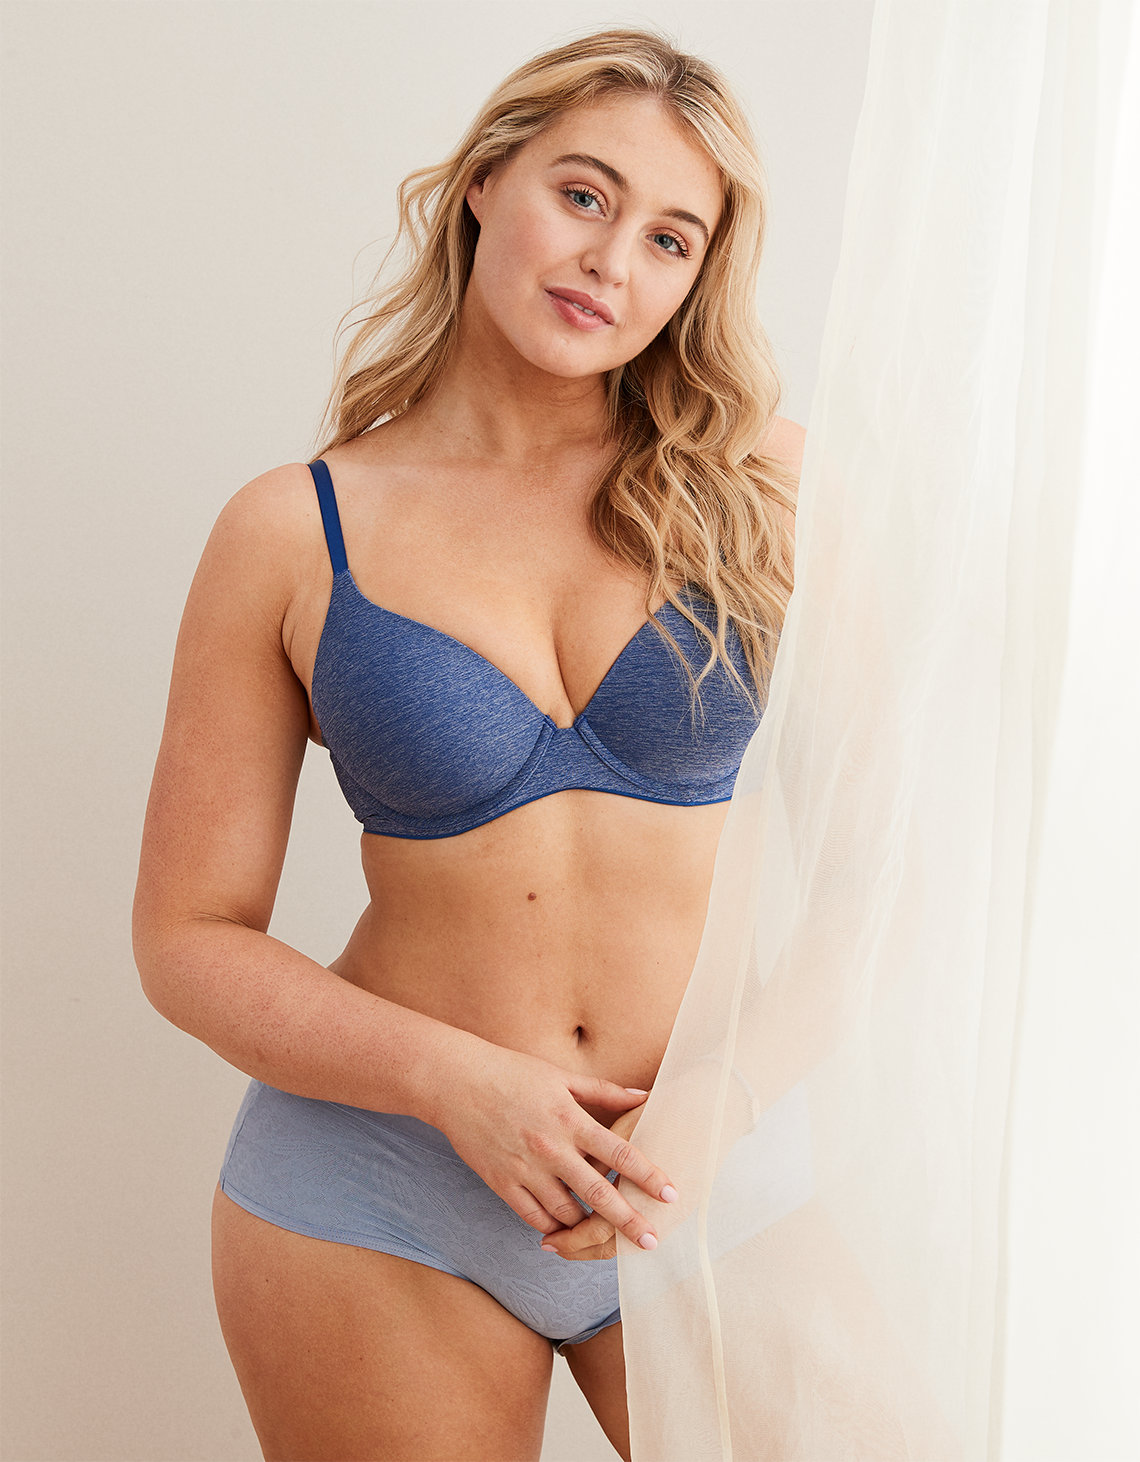 bc26211c0d945 Aerie Real Sunnie Full Coverage Lightly Lined Bra. Placeholder image.  Product Image